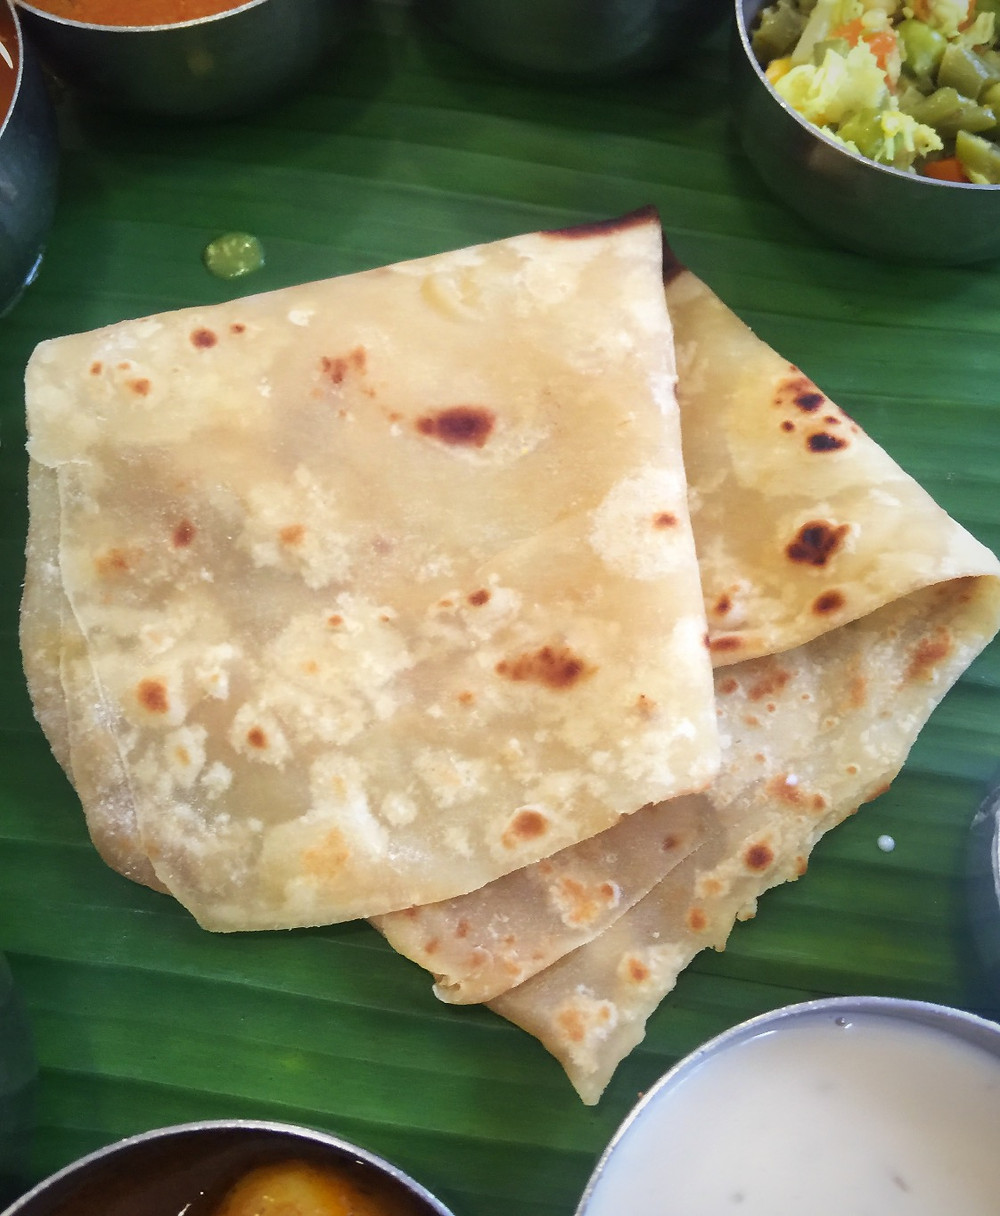 Bad roti @ Sangeetha in Chennai